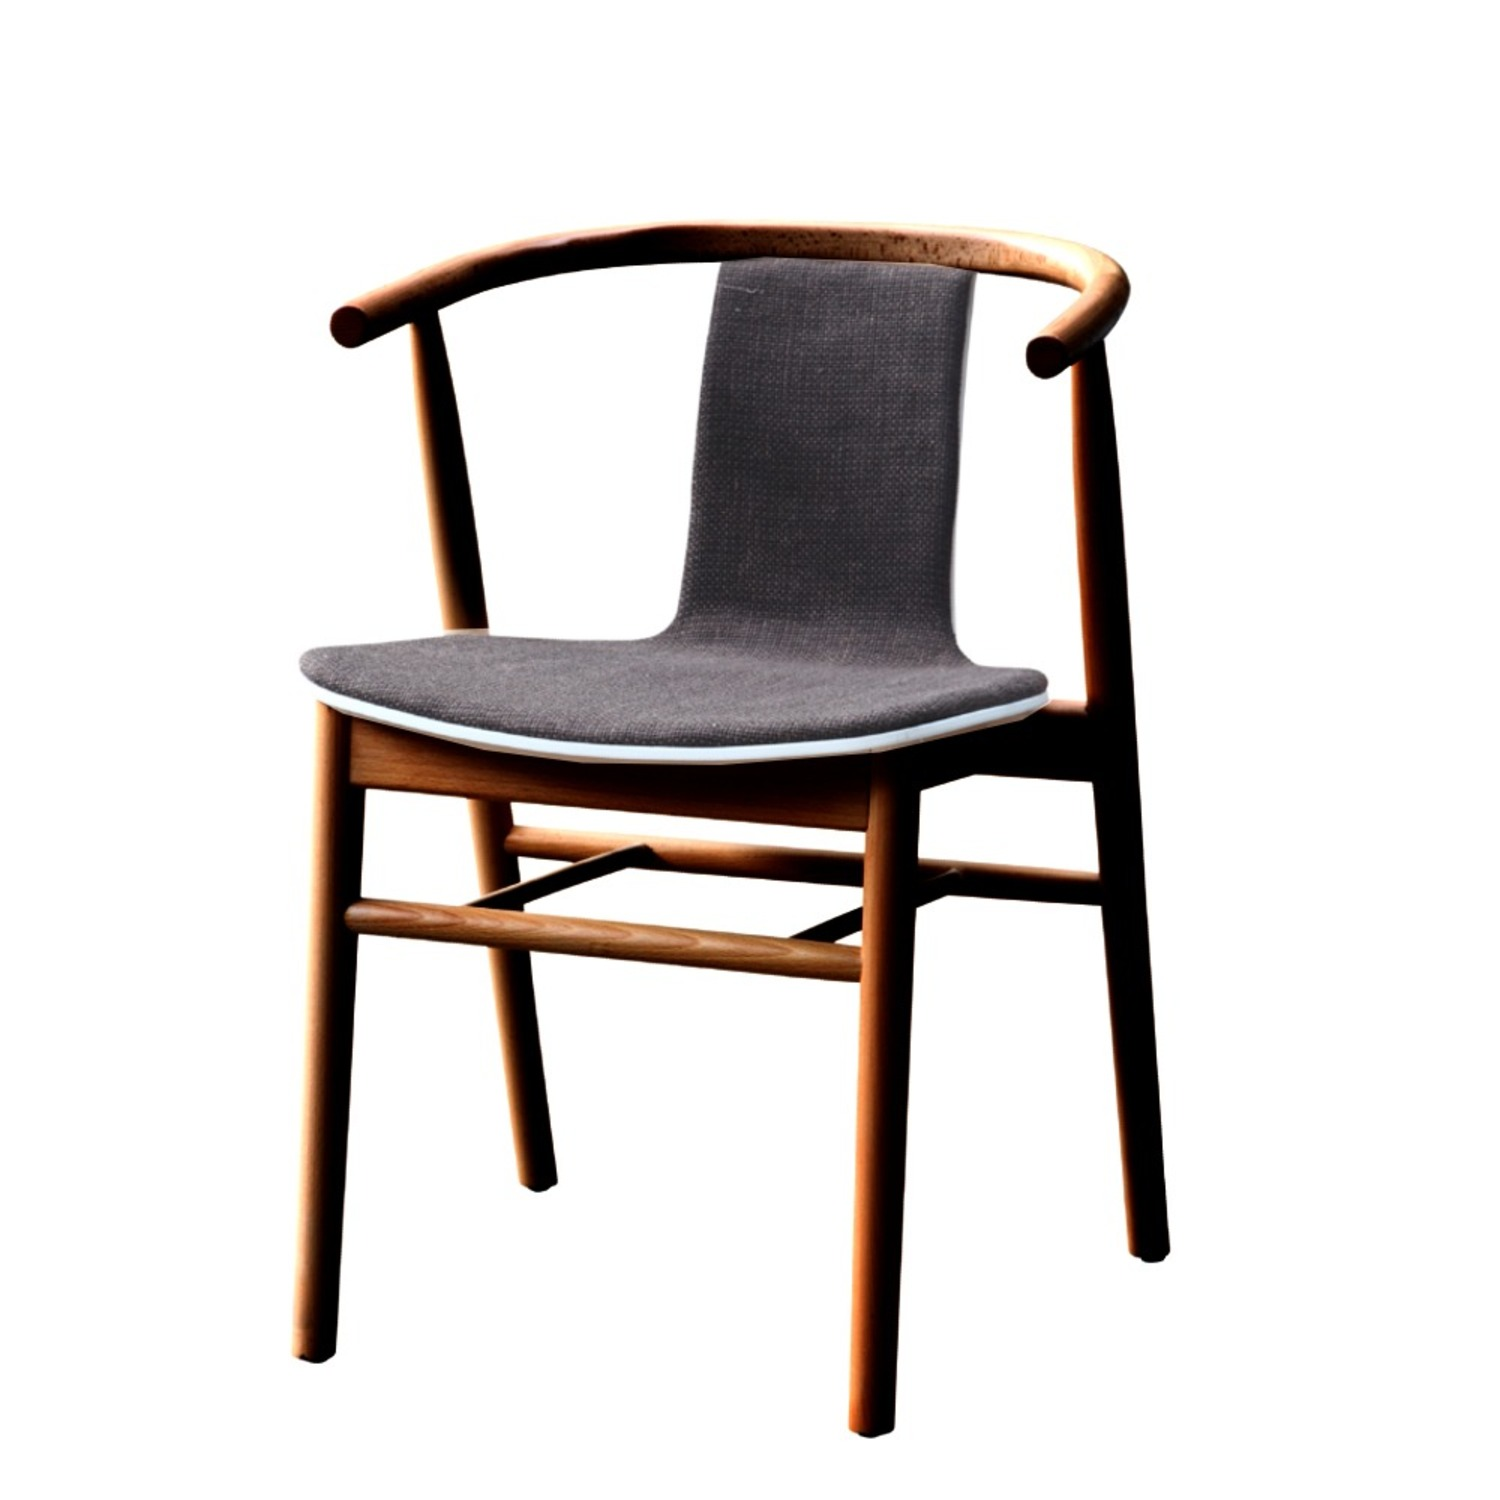 Side Chair In Walnut Wood Frame W/ Cotton Seat - image-3